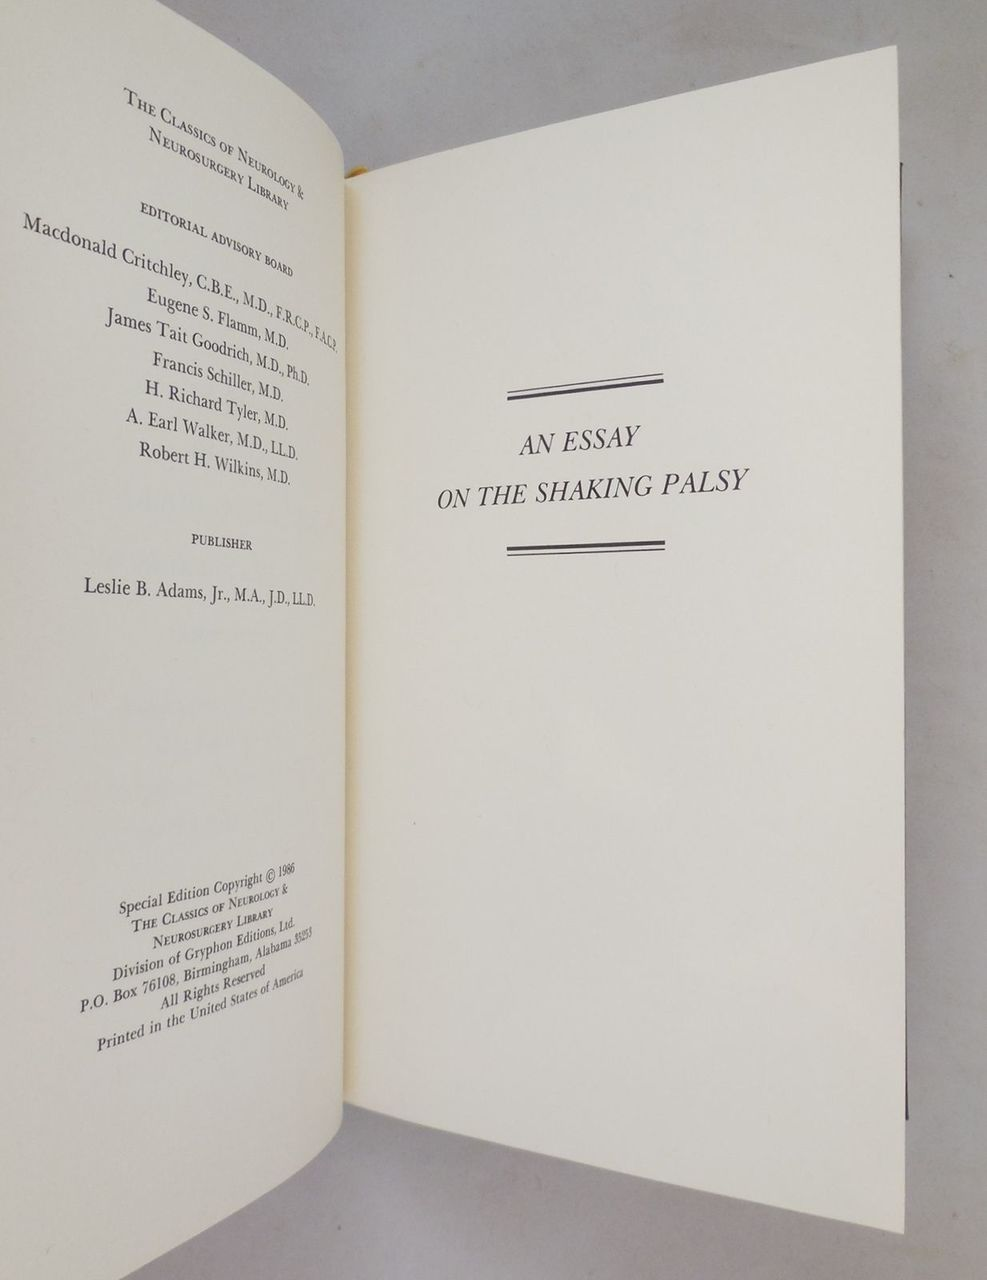 AN ESSAY ON THE SHAKING PALSY, by James Parkinson - 1986 [Ltd Ed] leatherbound